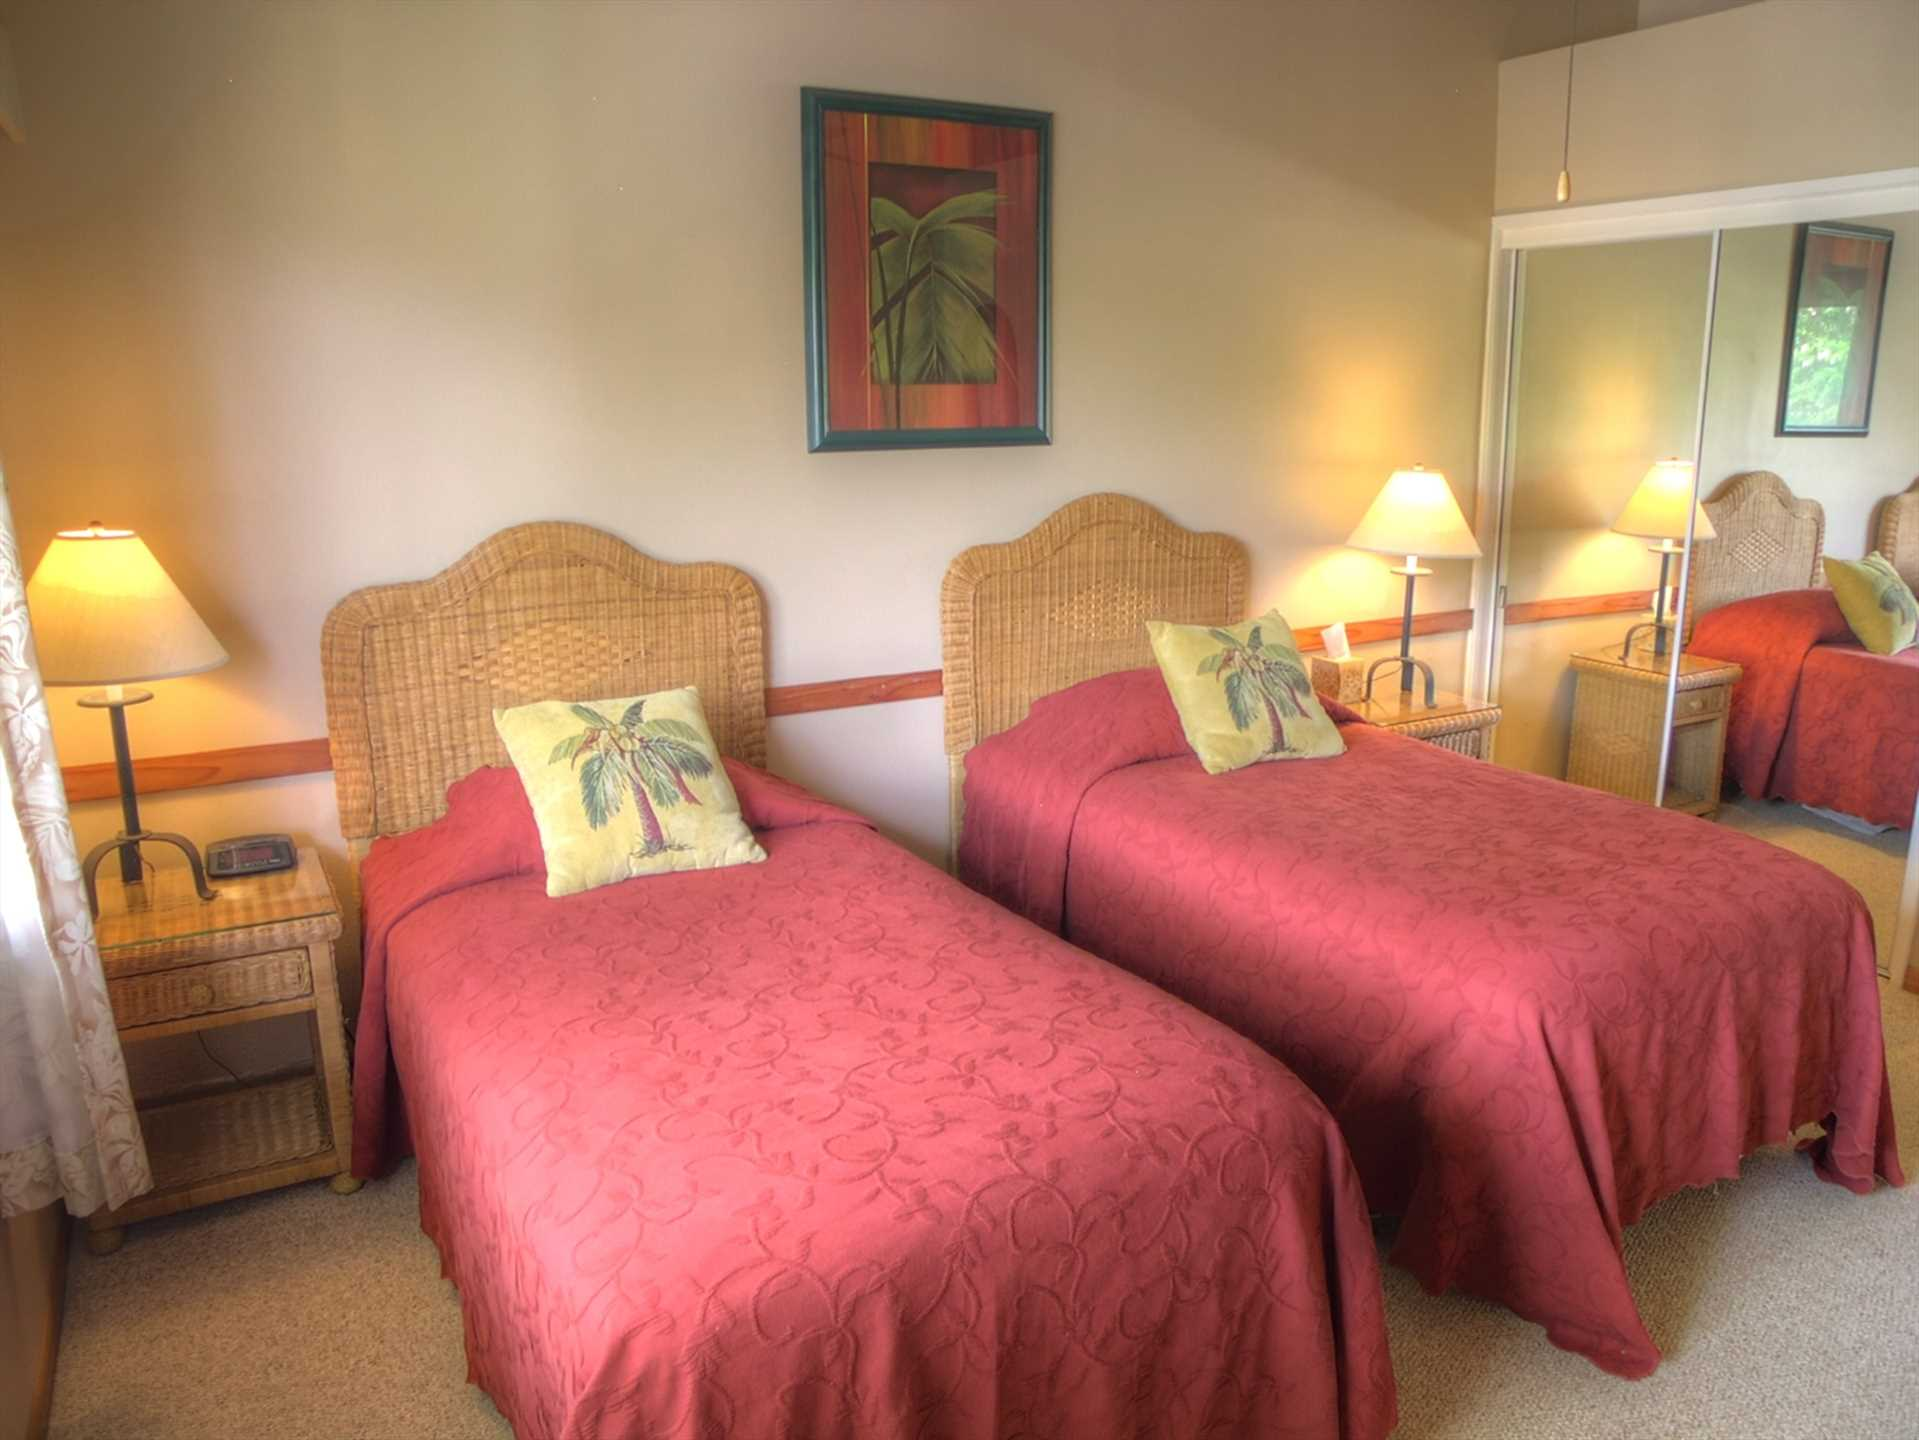 The guest bedroom has comfortable twin beds that can be converted into a king bed when needed. The full guest bath is just across the hall.